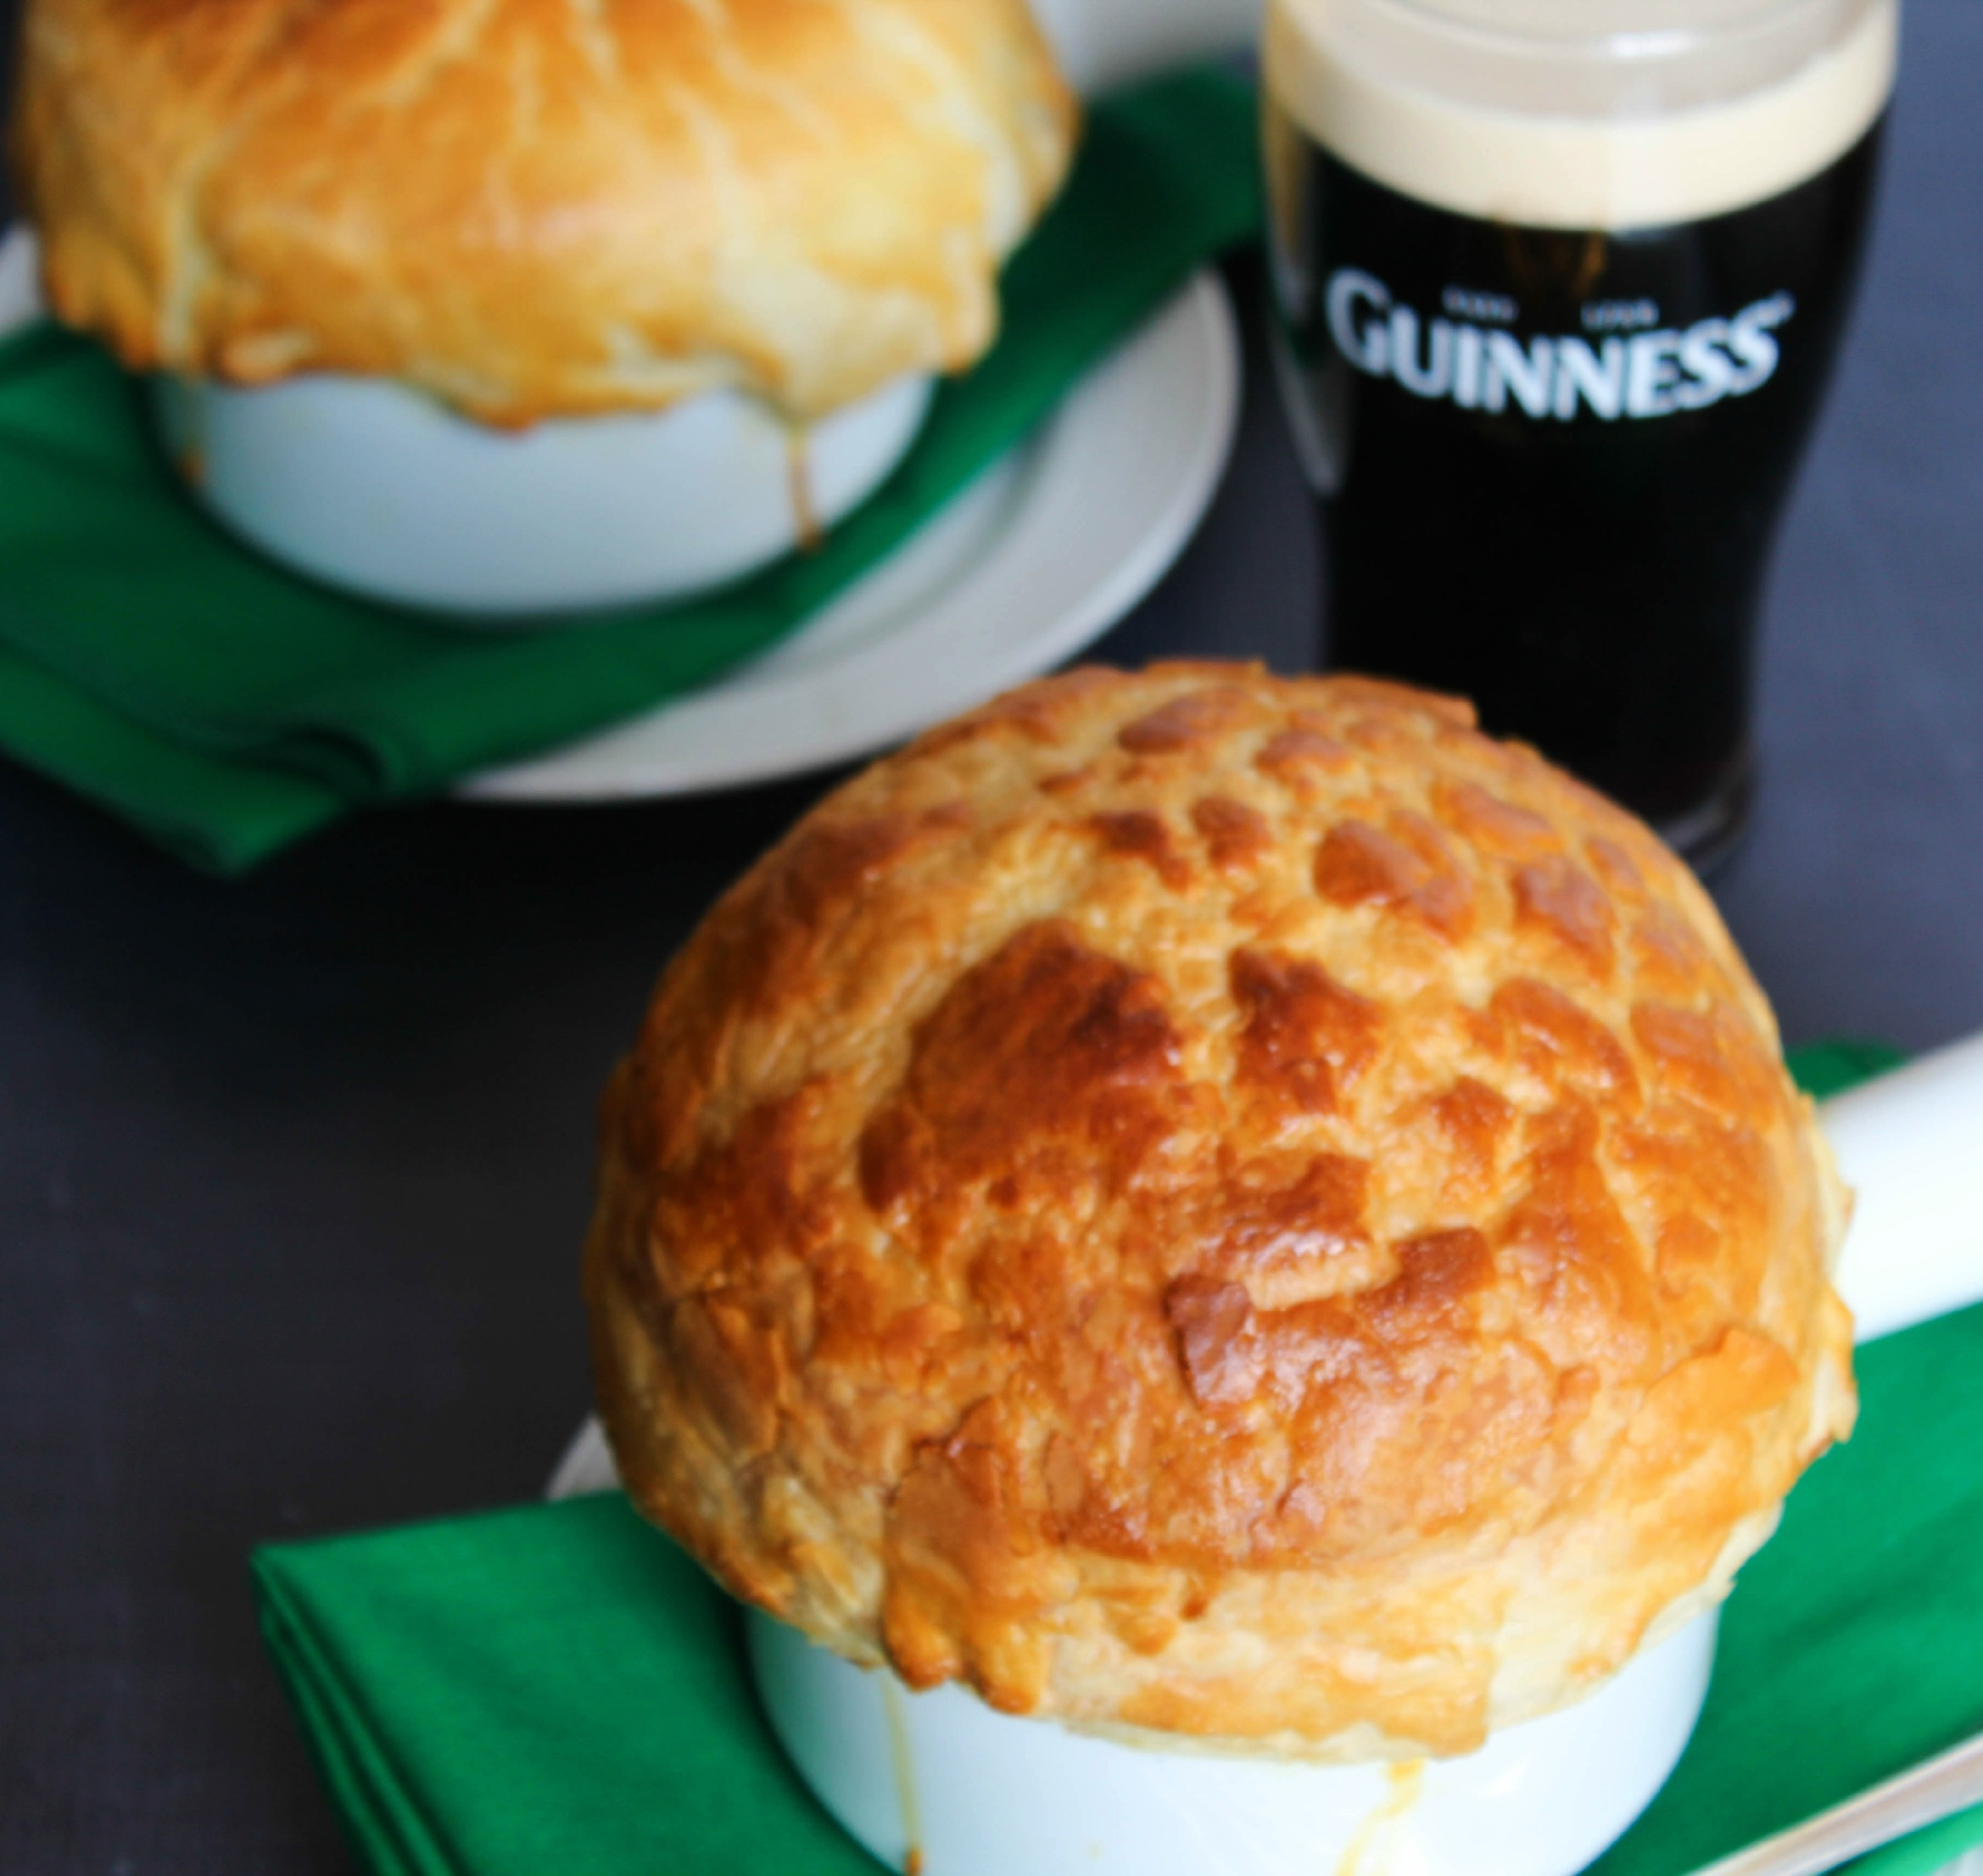 Beef-and-Guinness-Pie.jpg